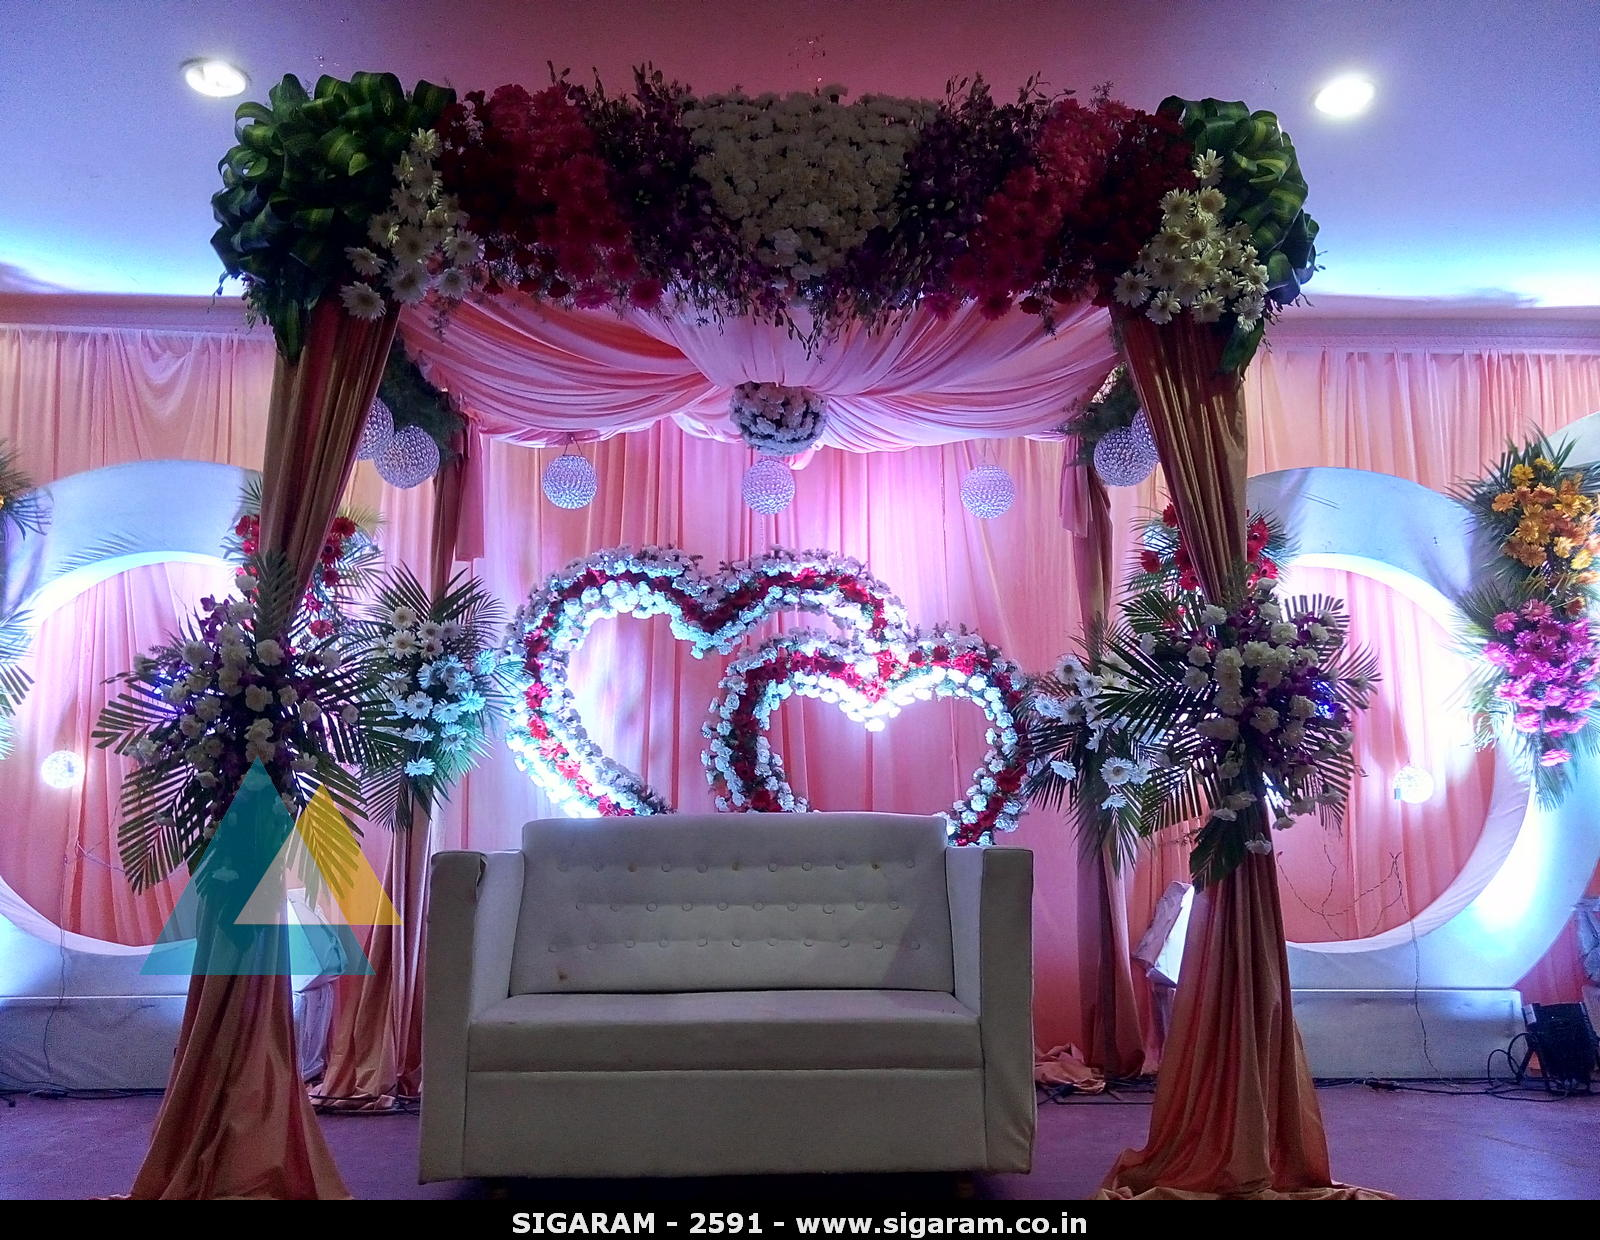 Wedding Reception Decoration At Subalakshmi Thirumana Mahal